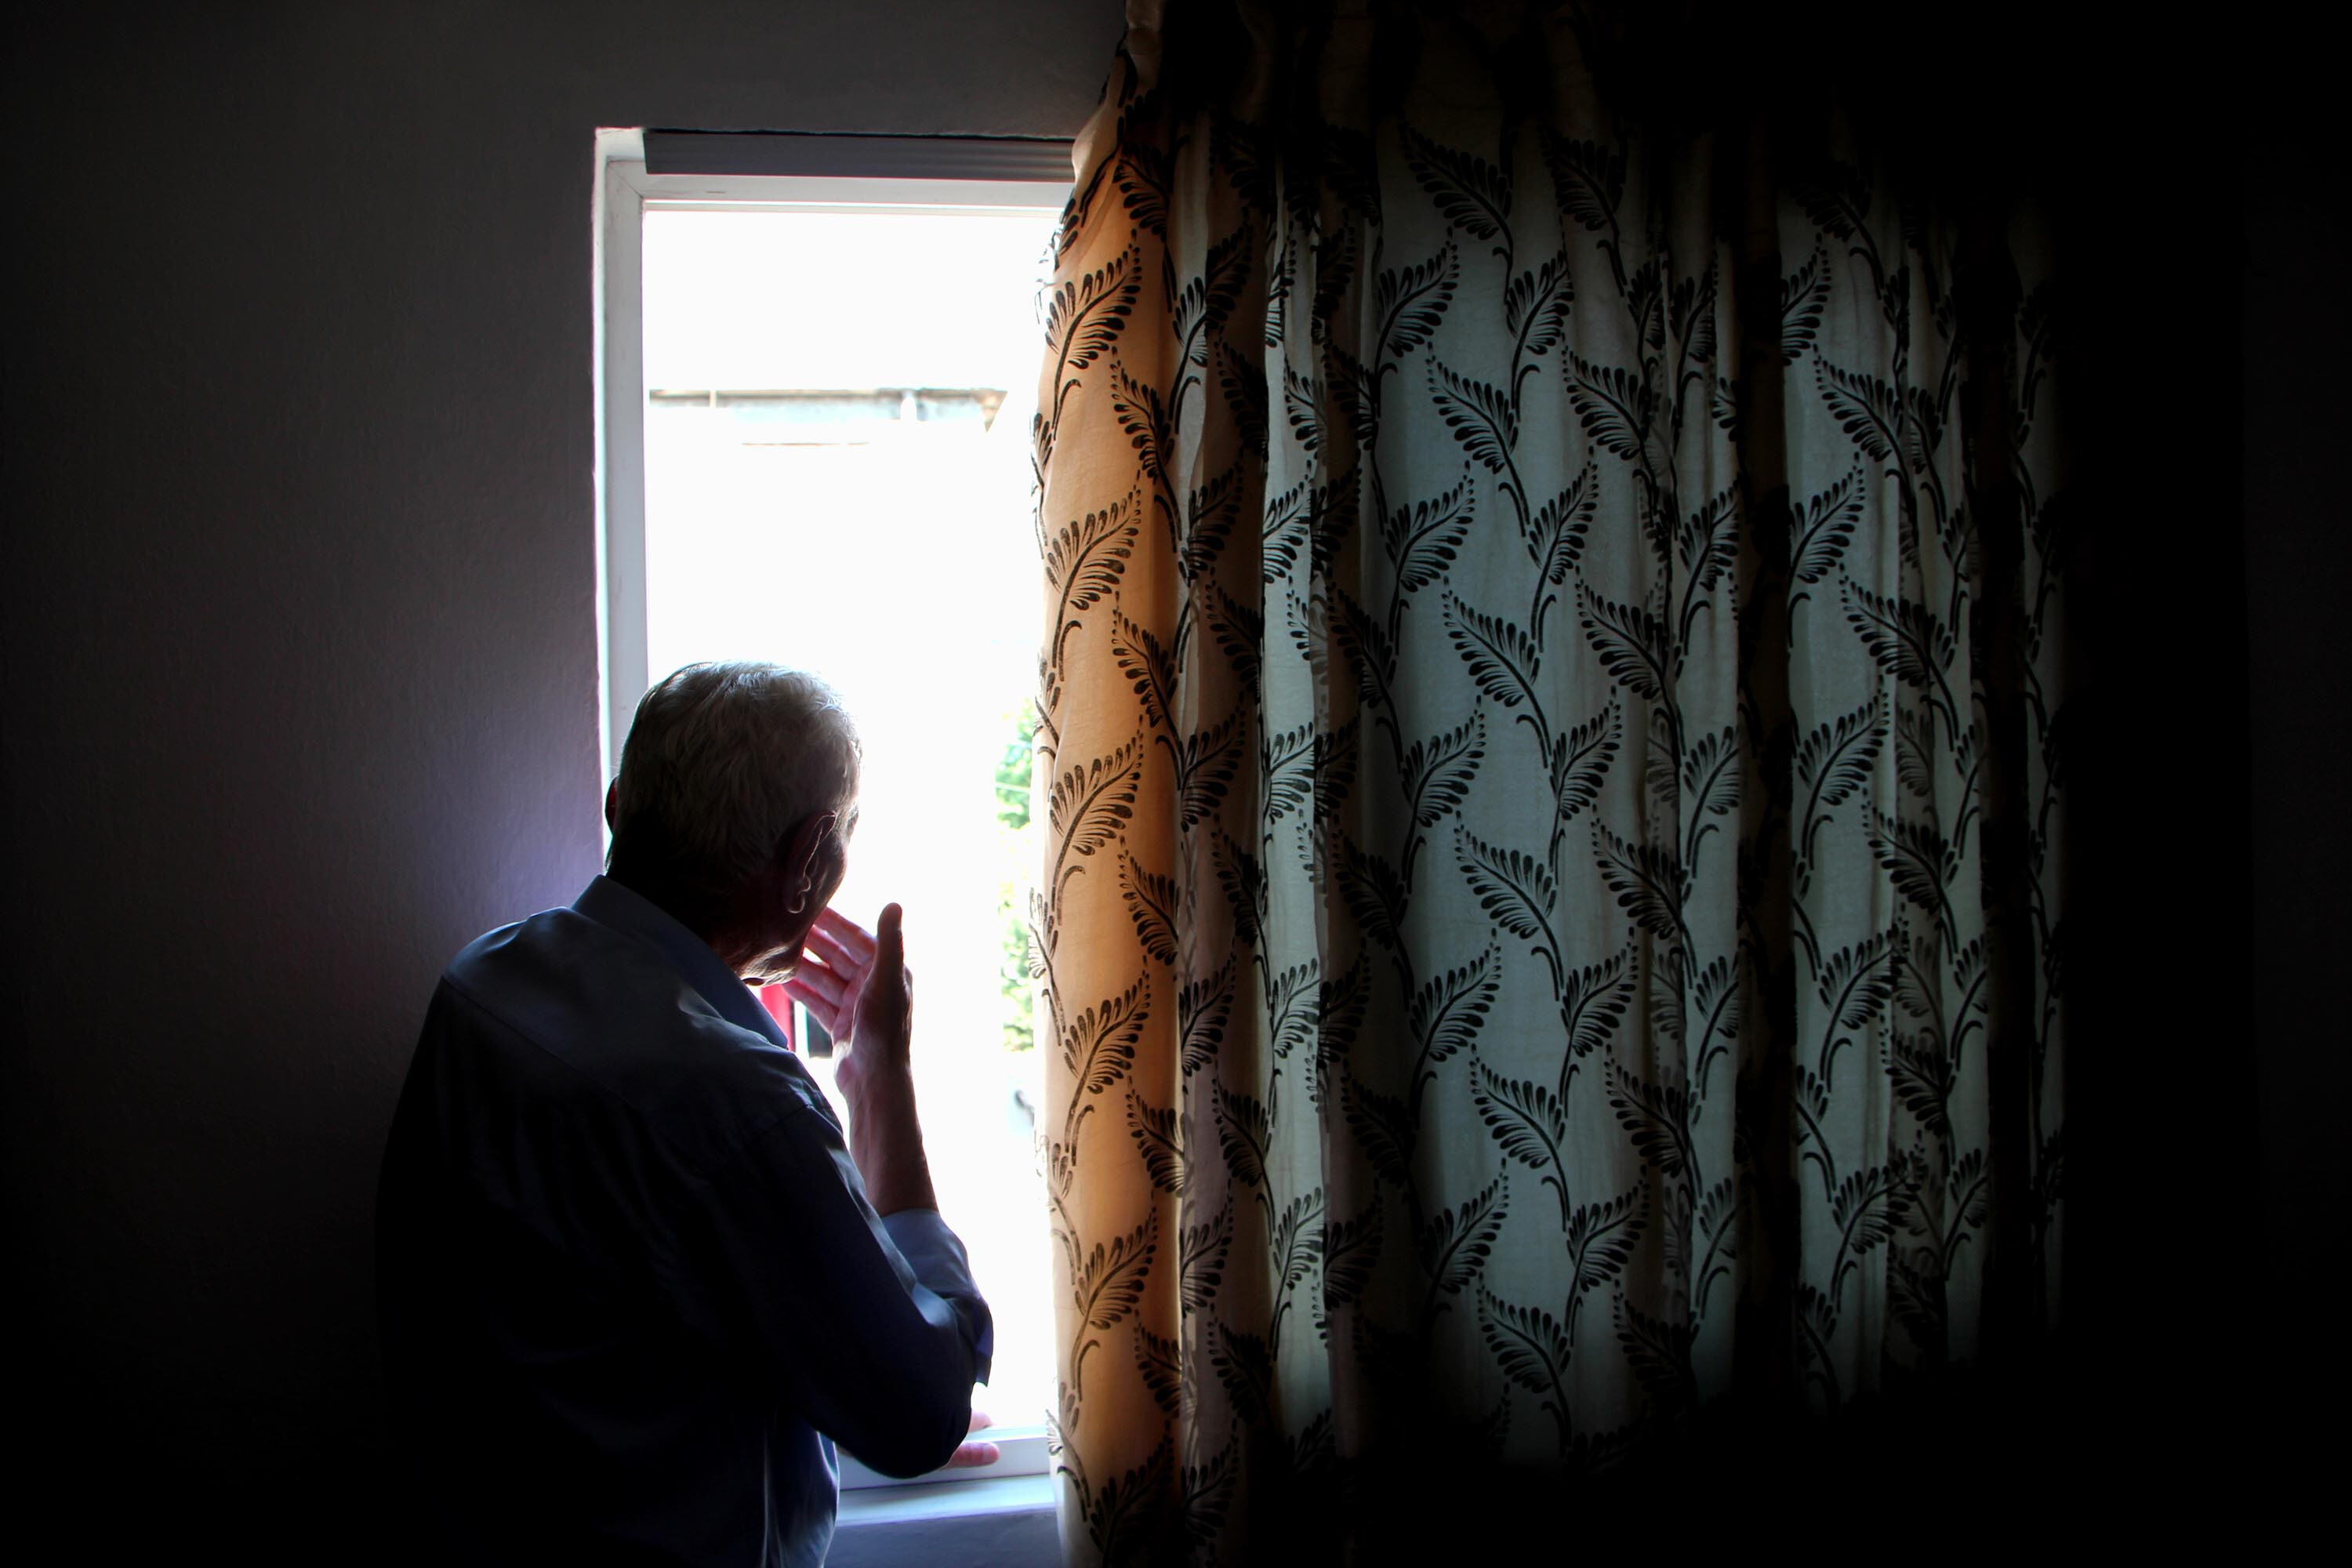 Covid-19 linked to cognitive decline, acceleration of Alzheimer's-like symptoms, research finds